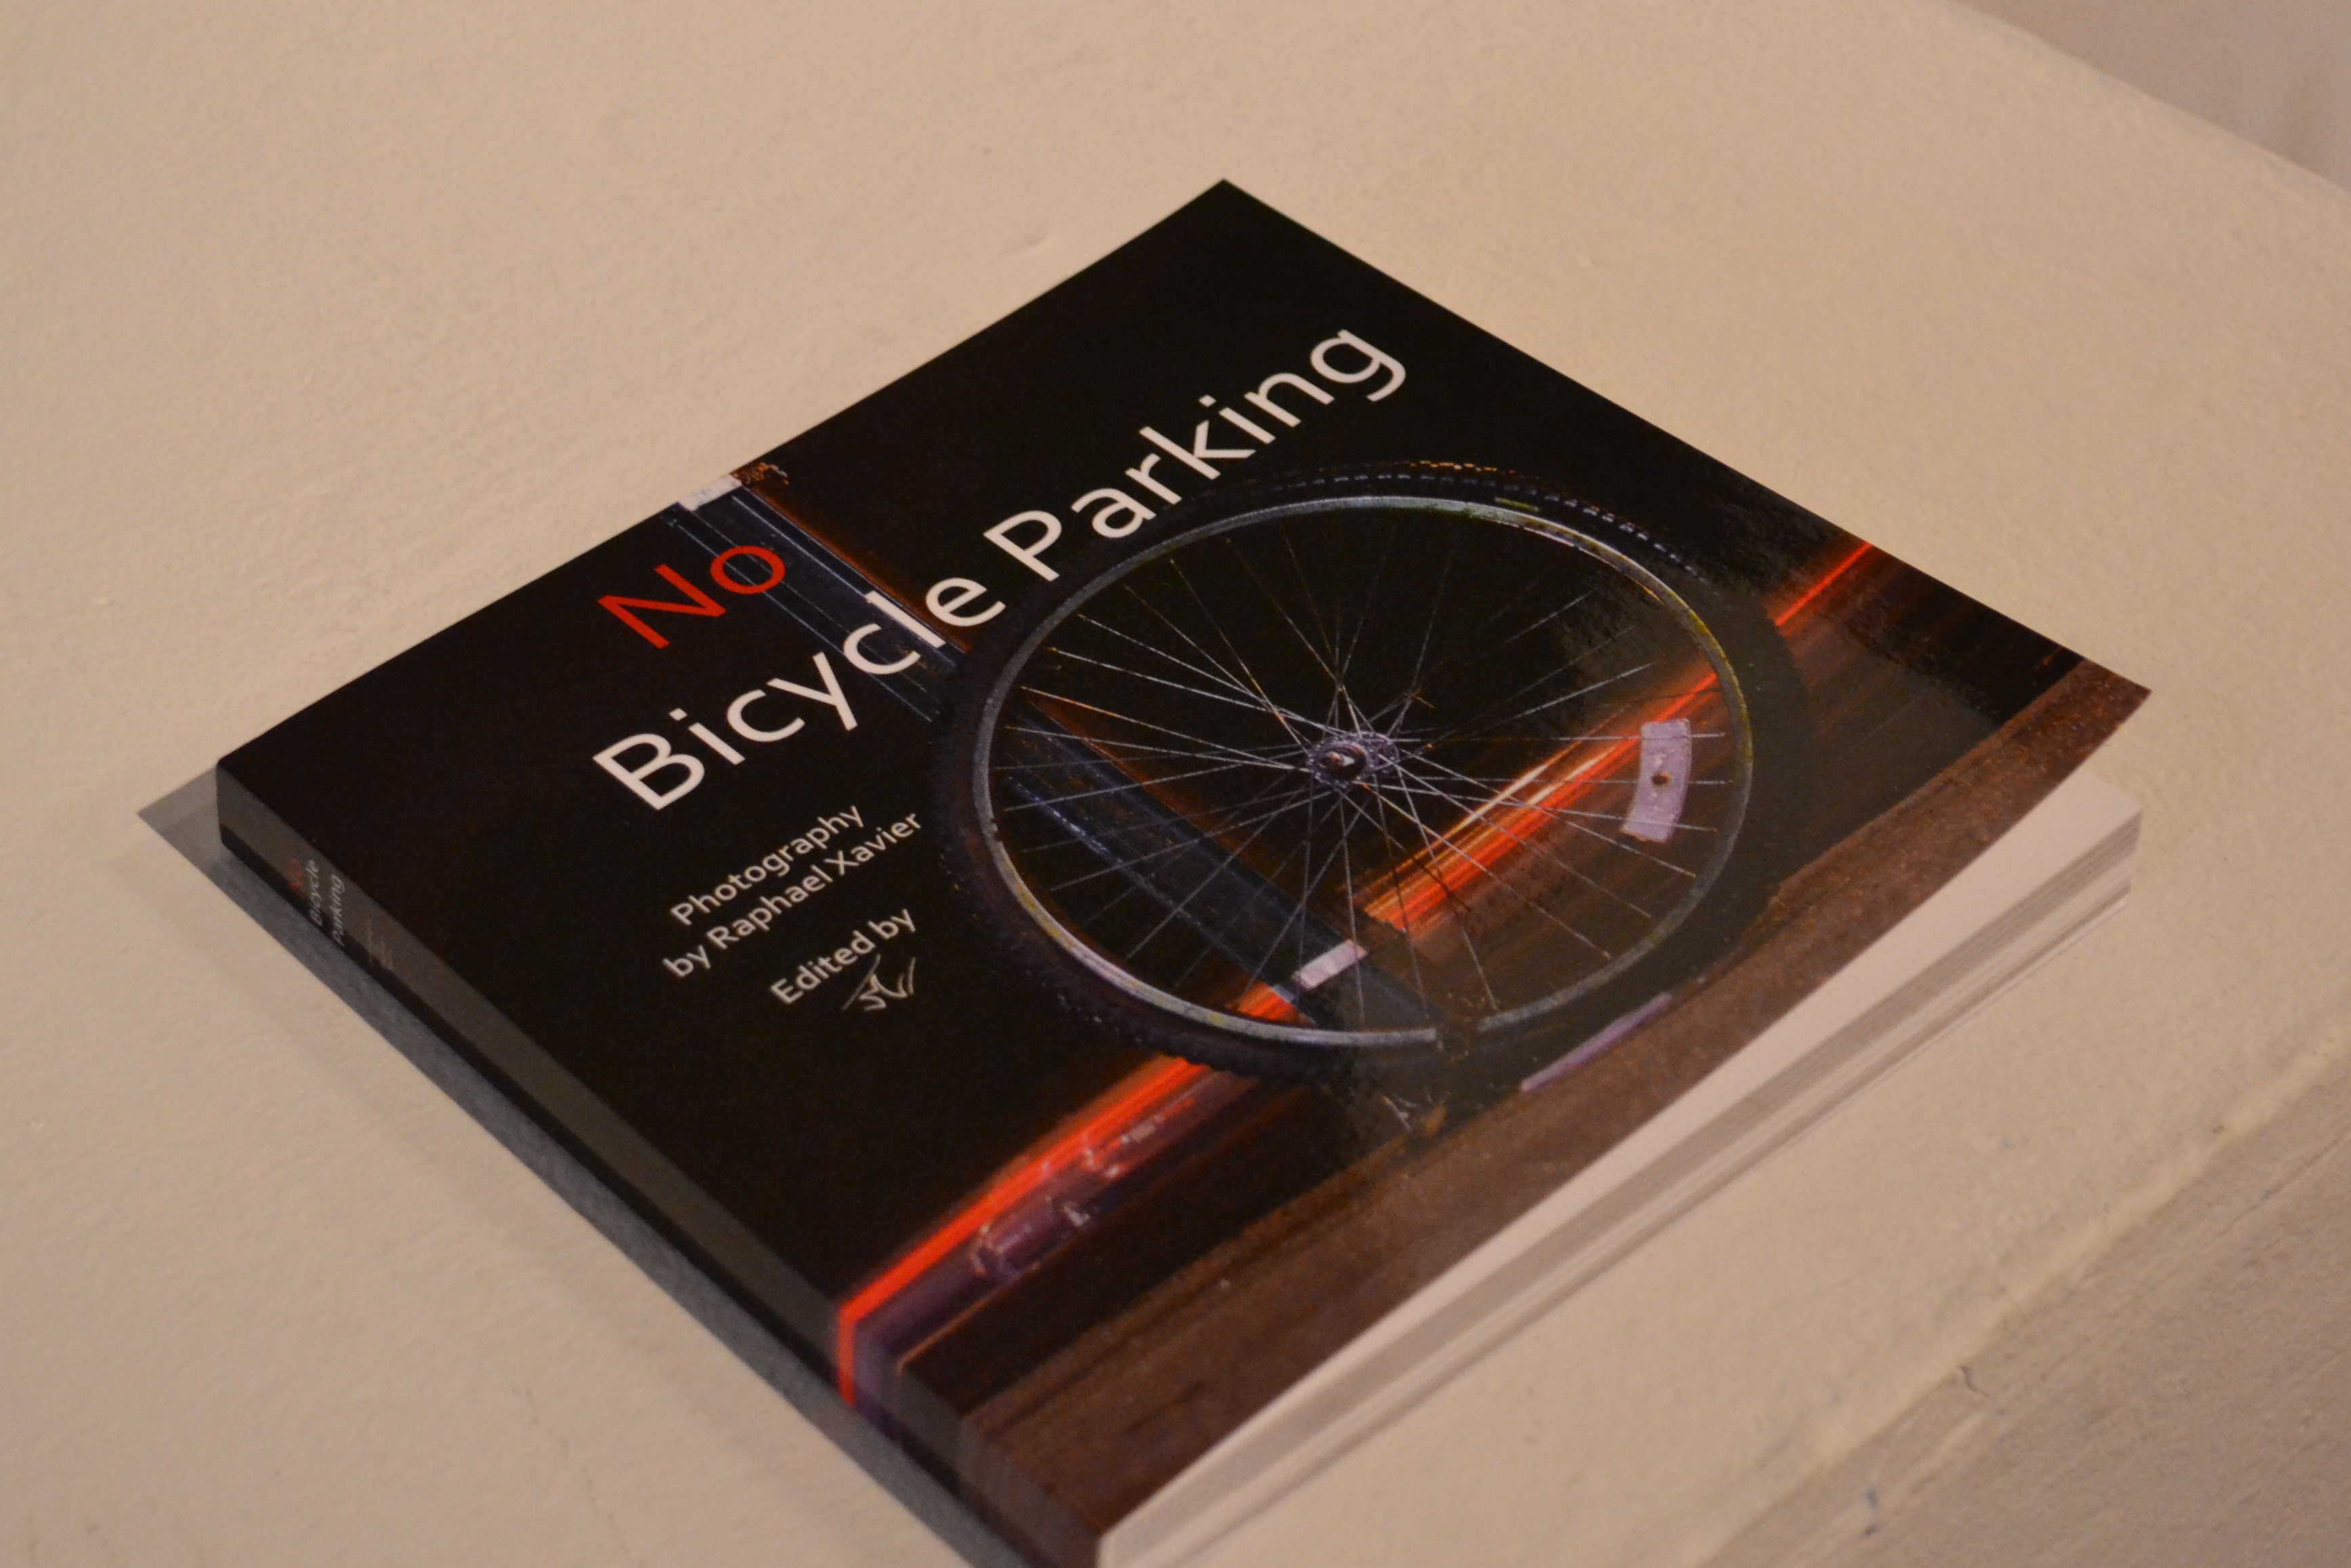 Xavier has printed a sample No Bicycle Parking book, but he plans to add more photos and personal stories